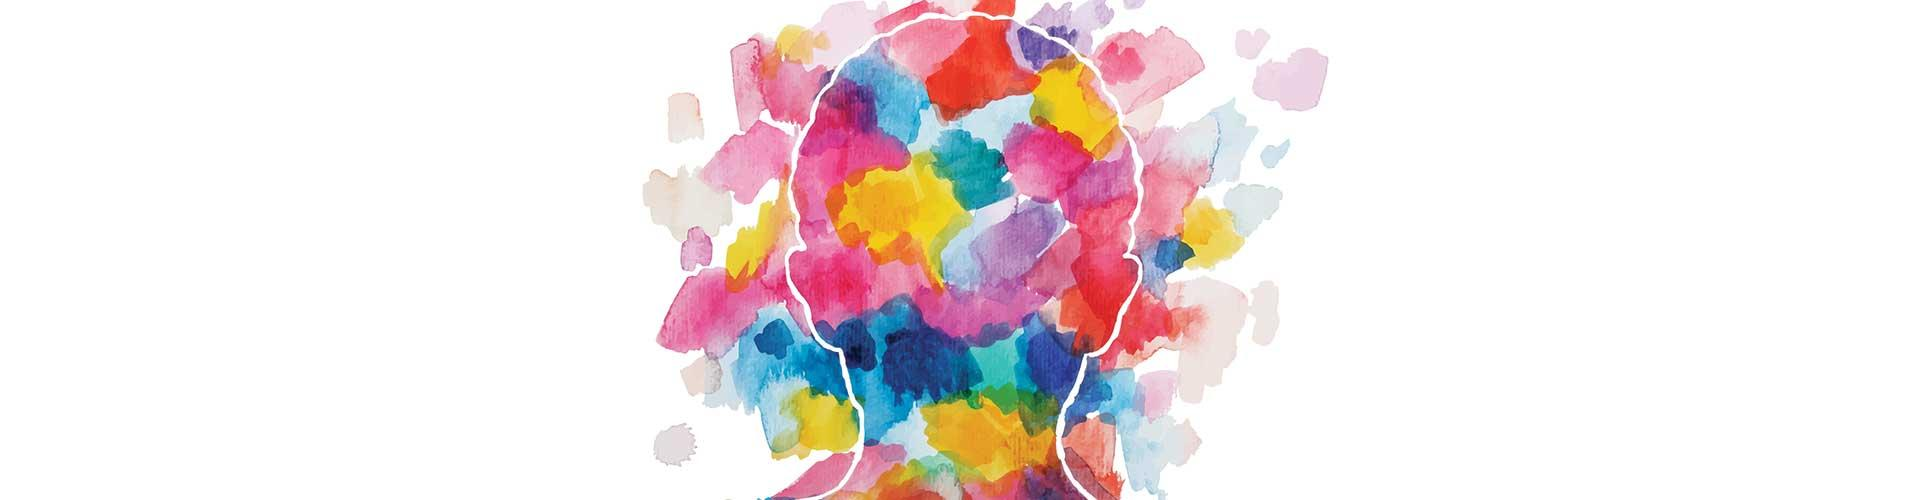 Illustration of child's head with watercolor background